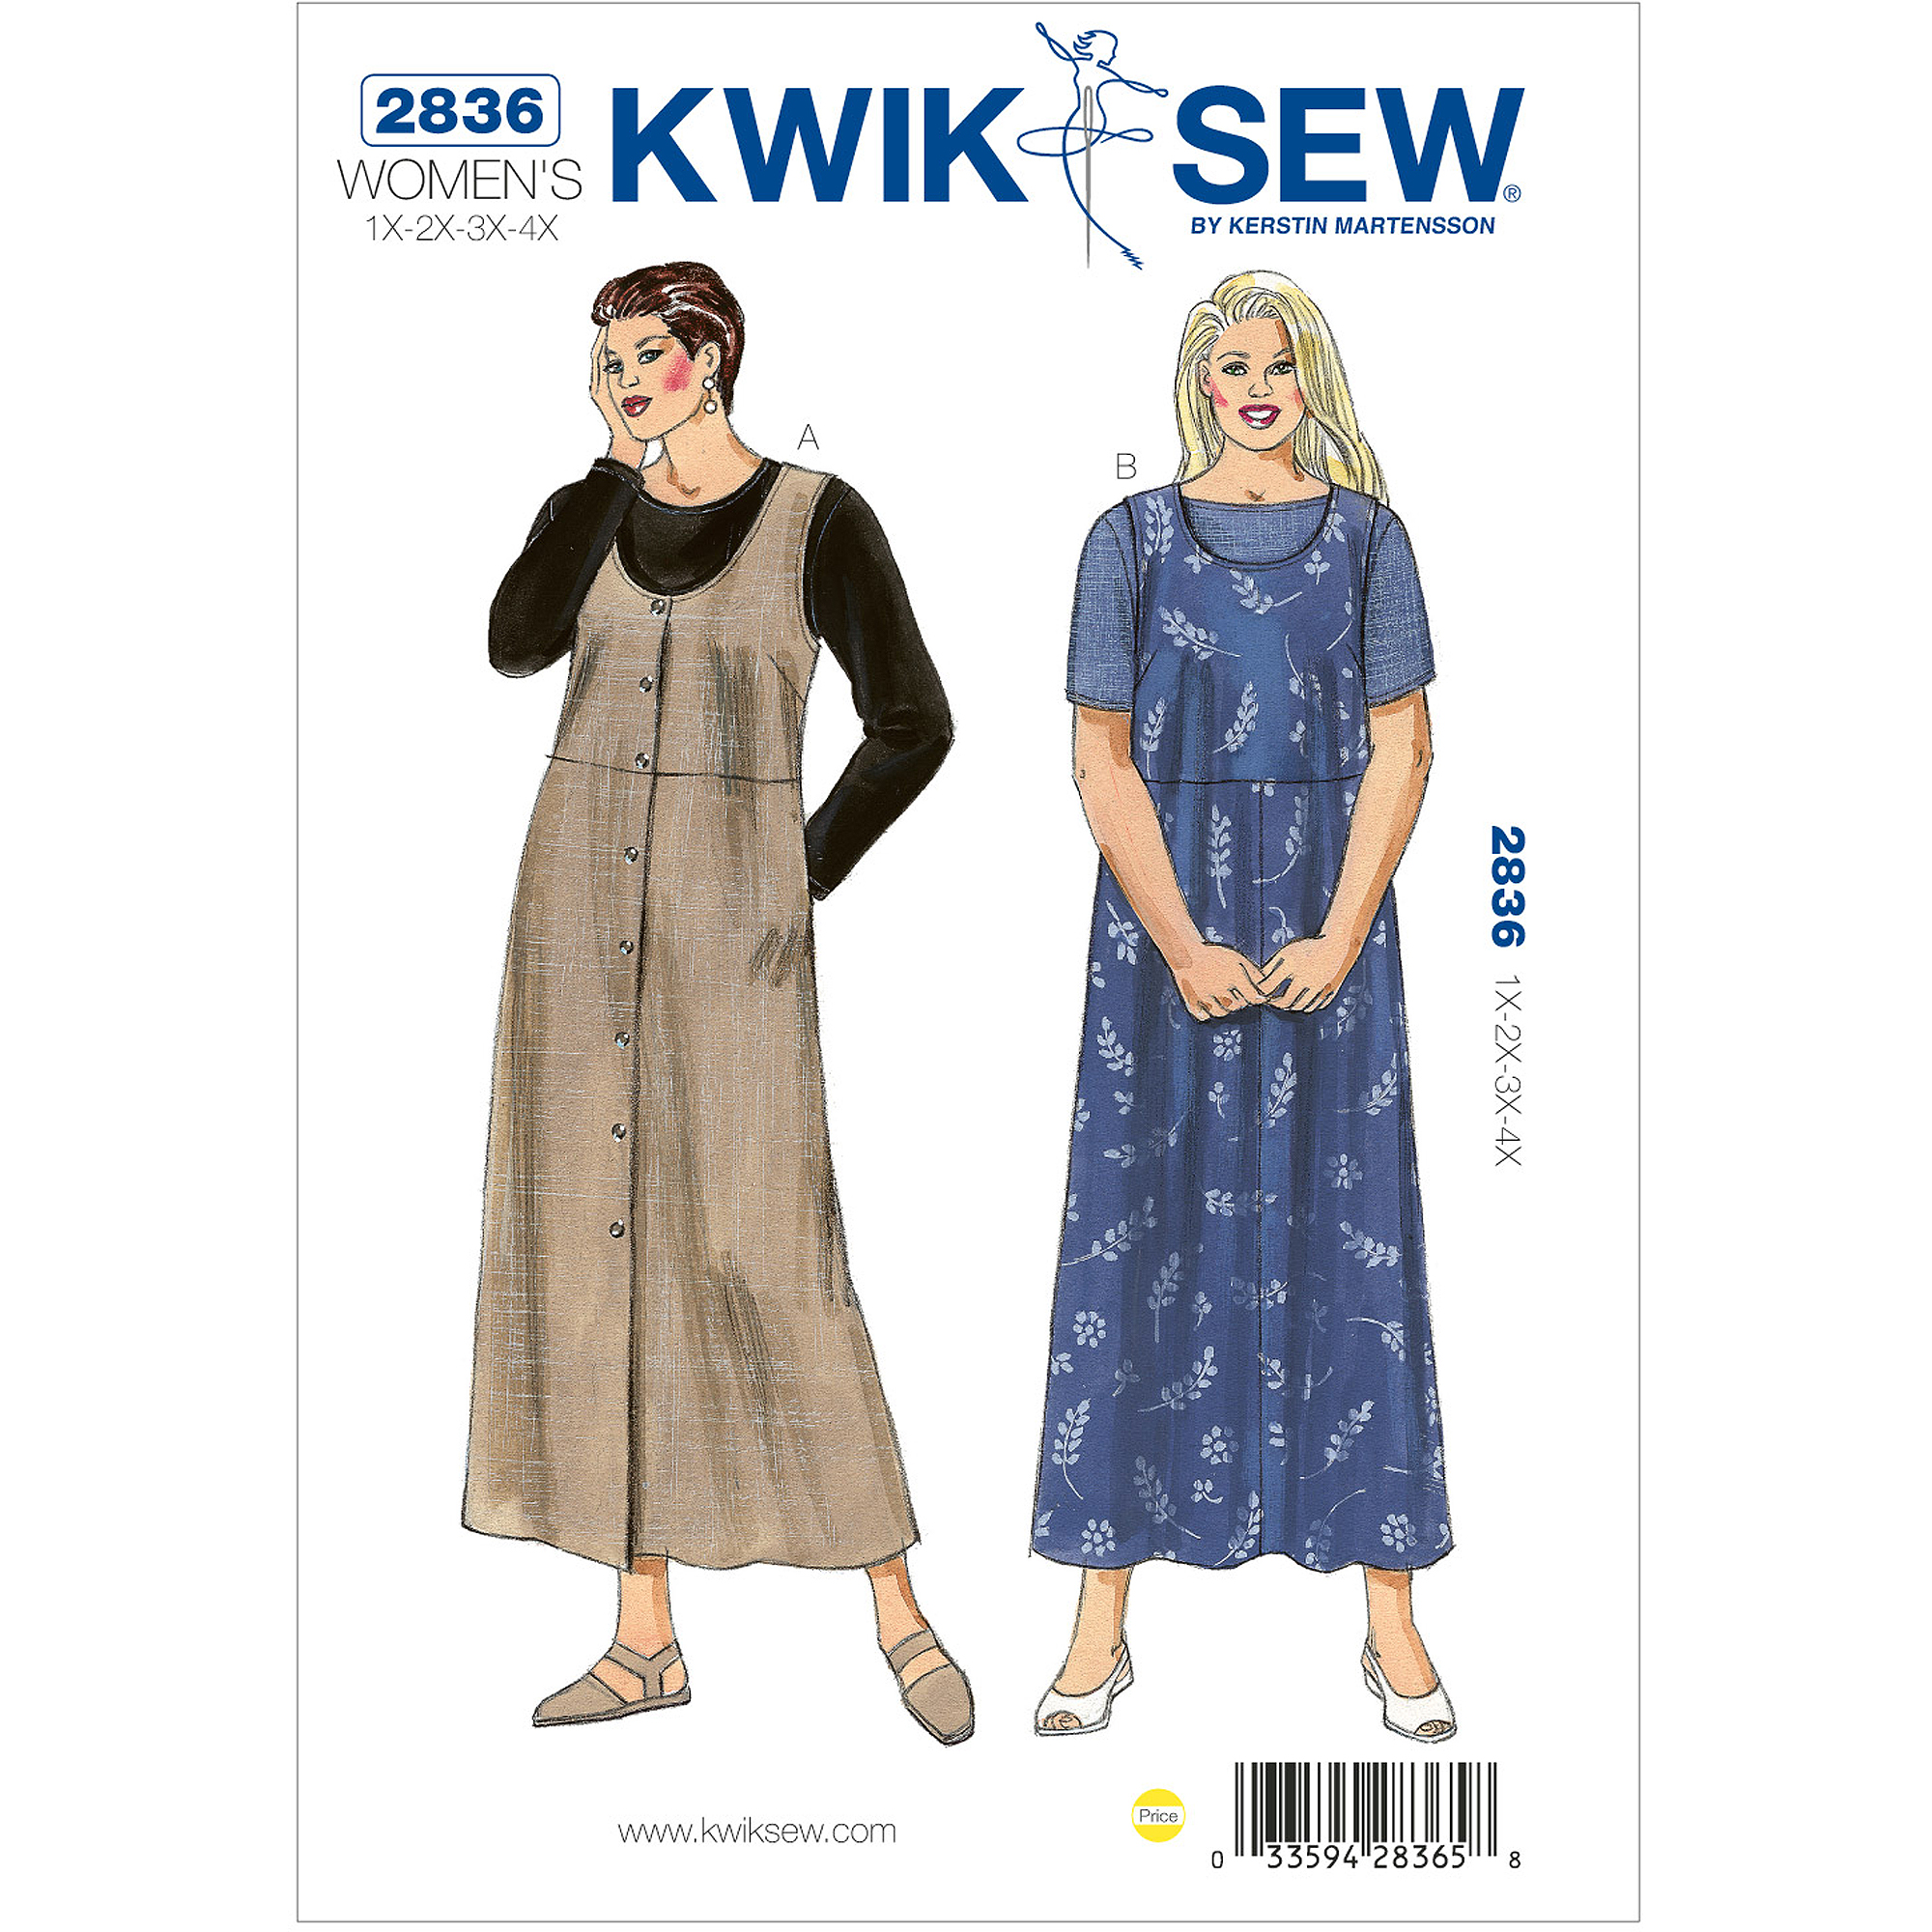 Kwik Sew Pattern Jumpers and Shirts, (1X, 2X, 3X, 4X)